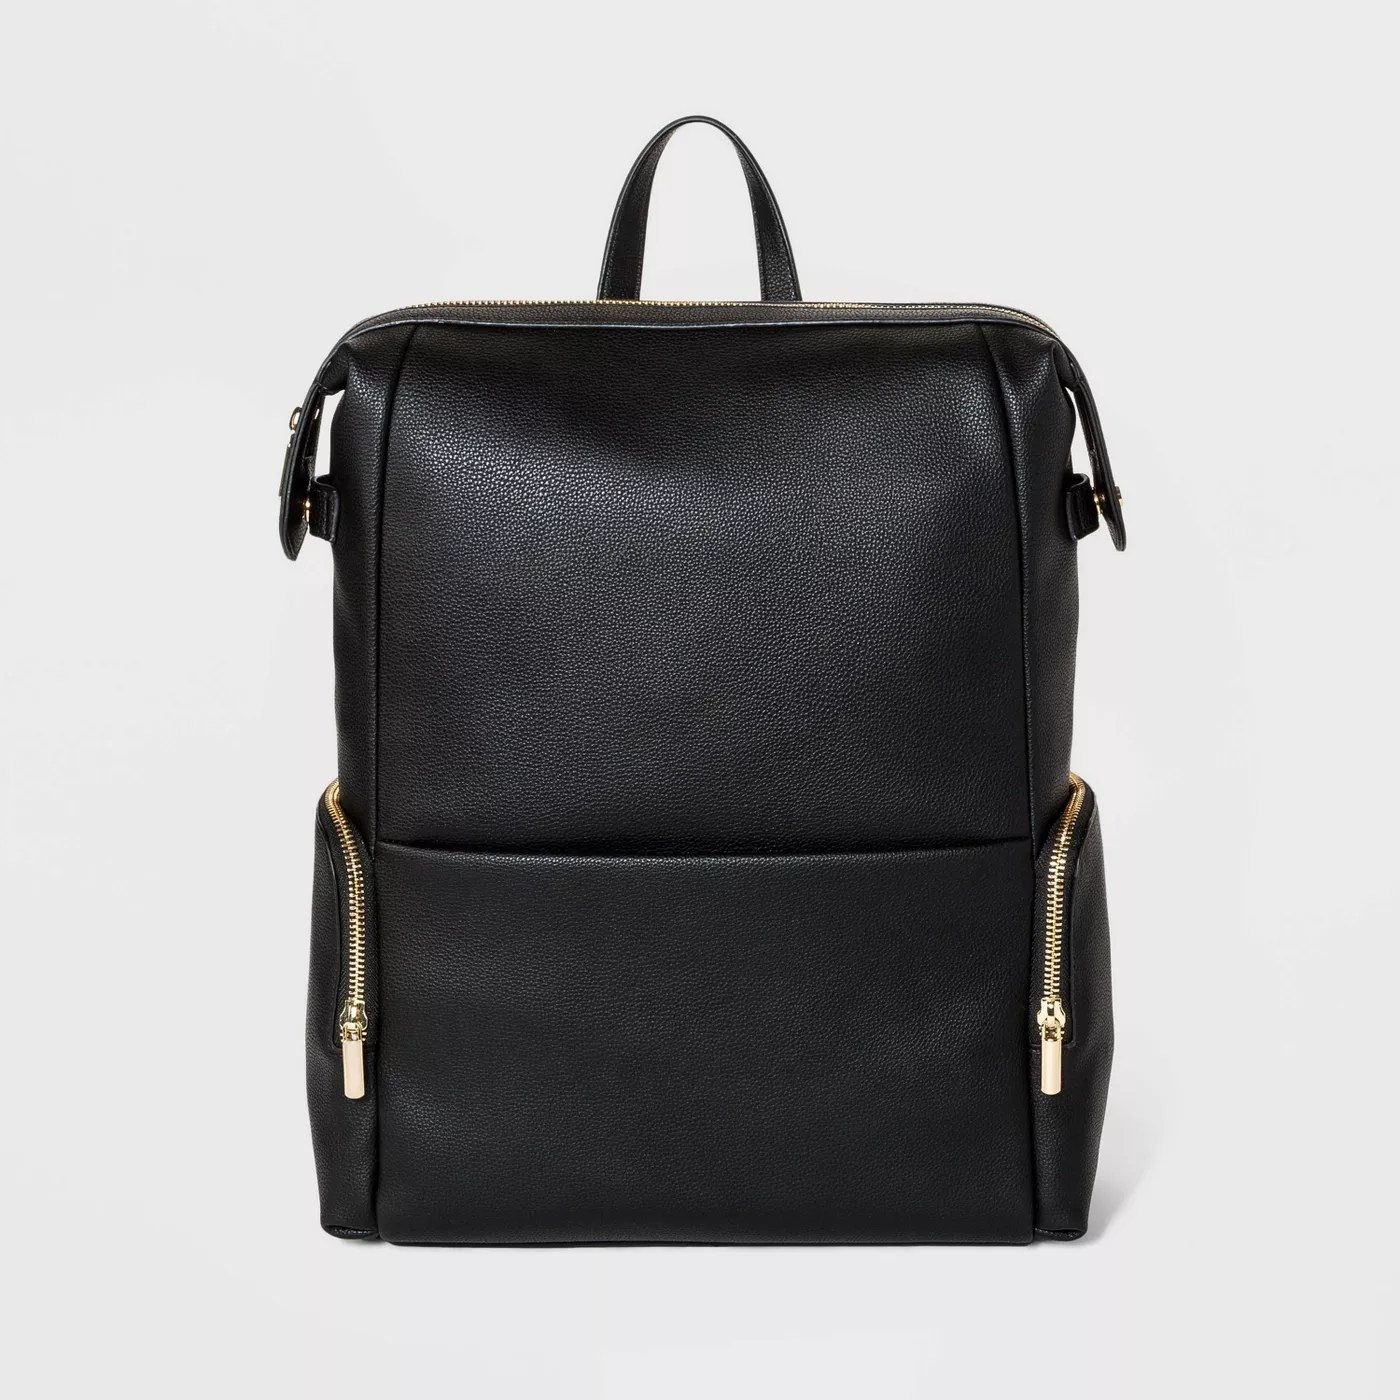 The black backpack with zip closures and three smaller compartments